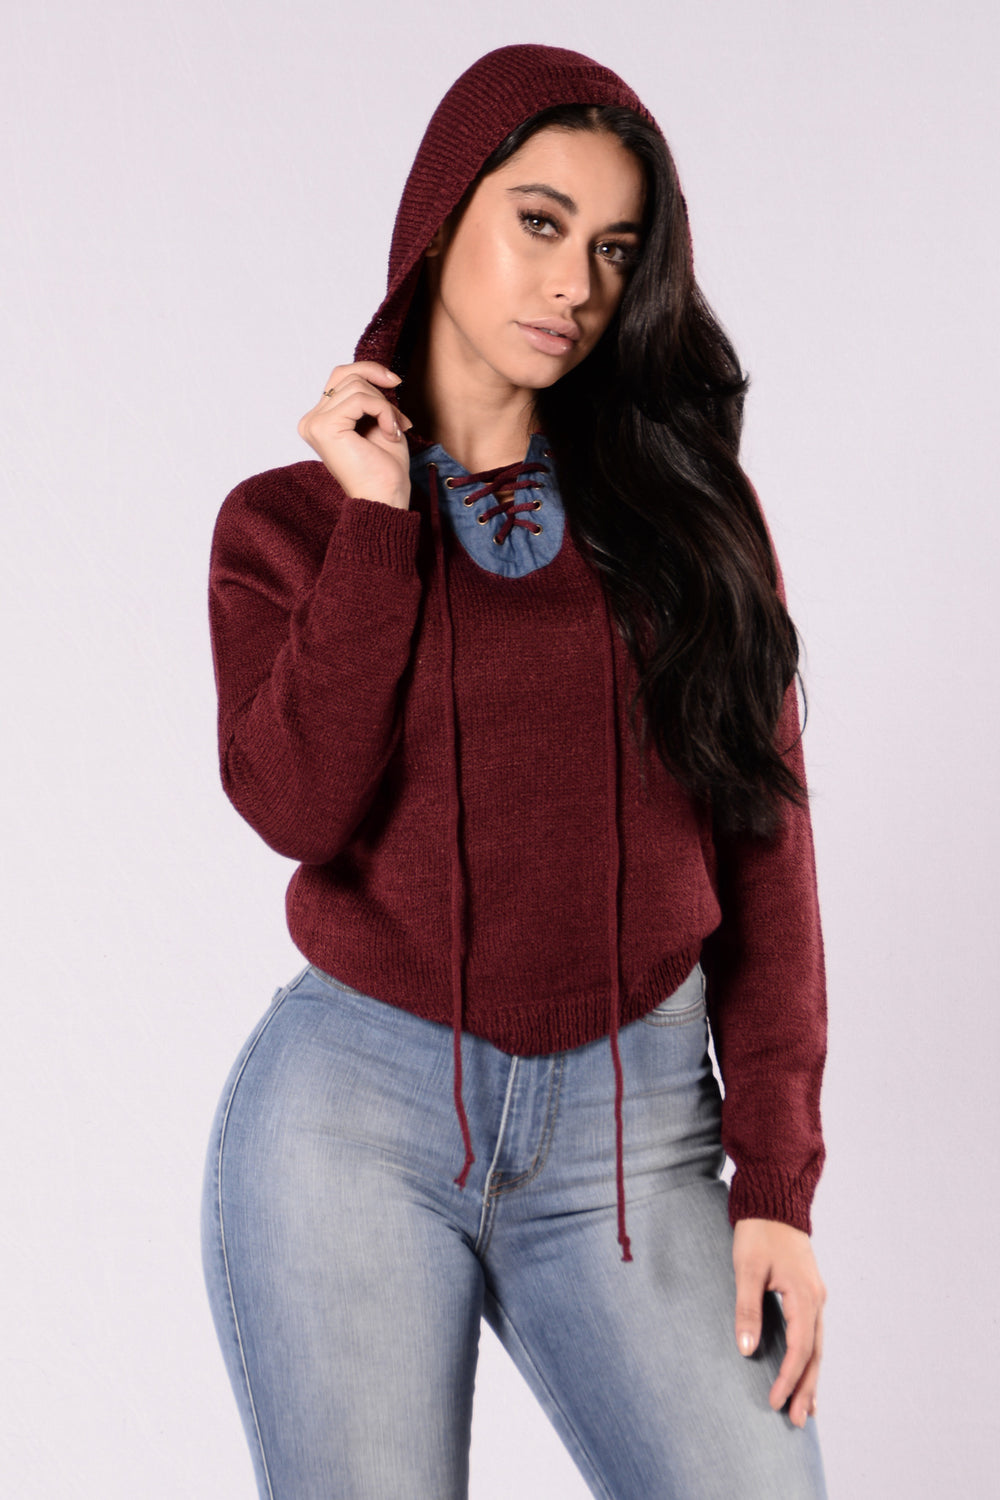 Sorority Sweater - Burgundy